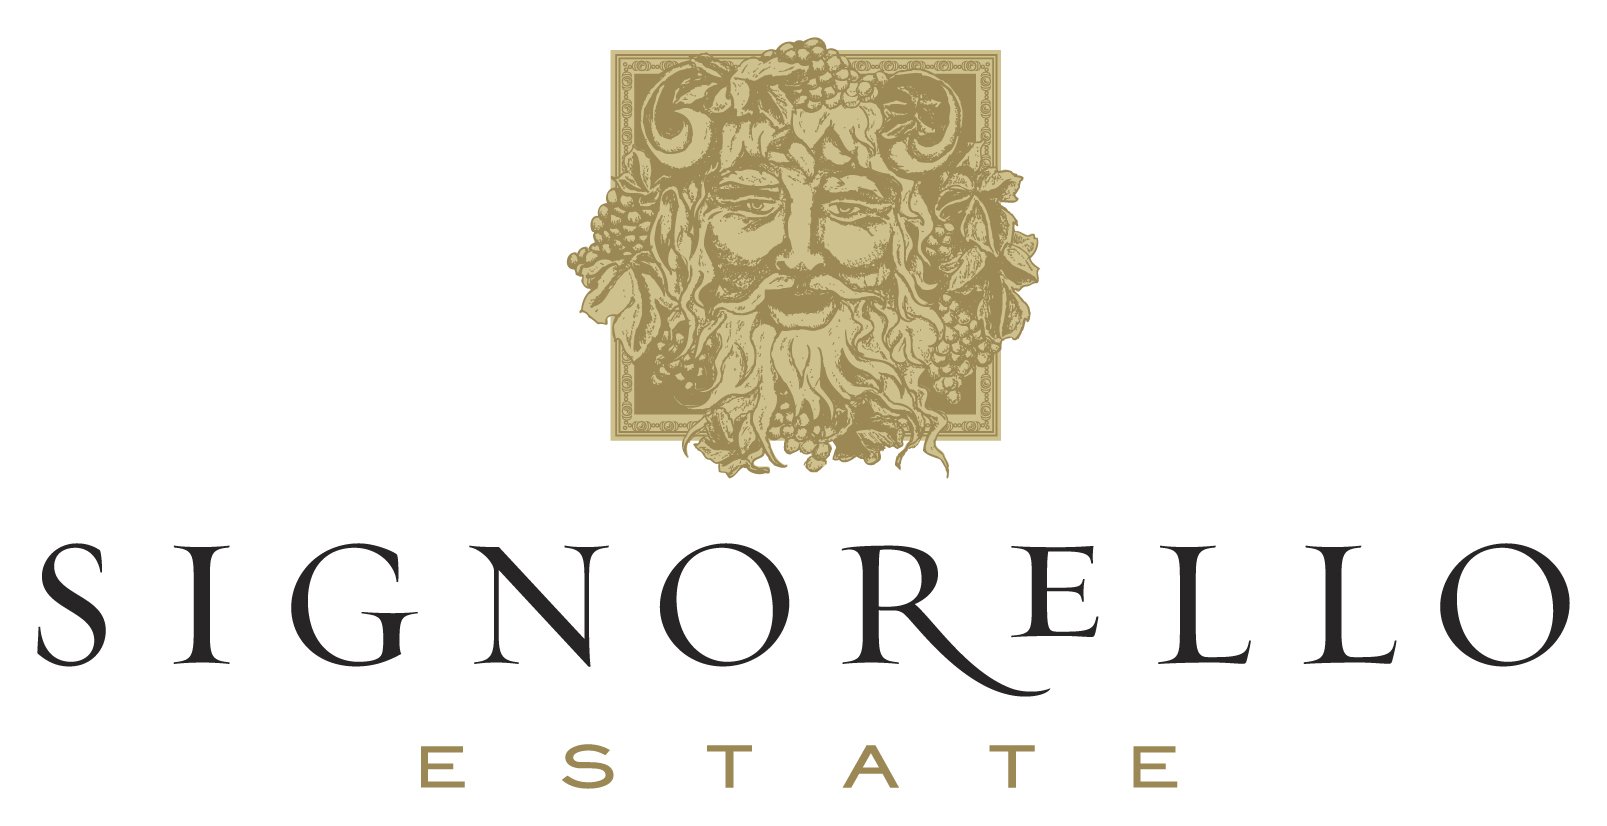 Signorello Estate